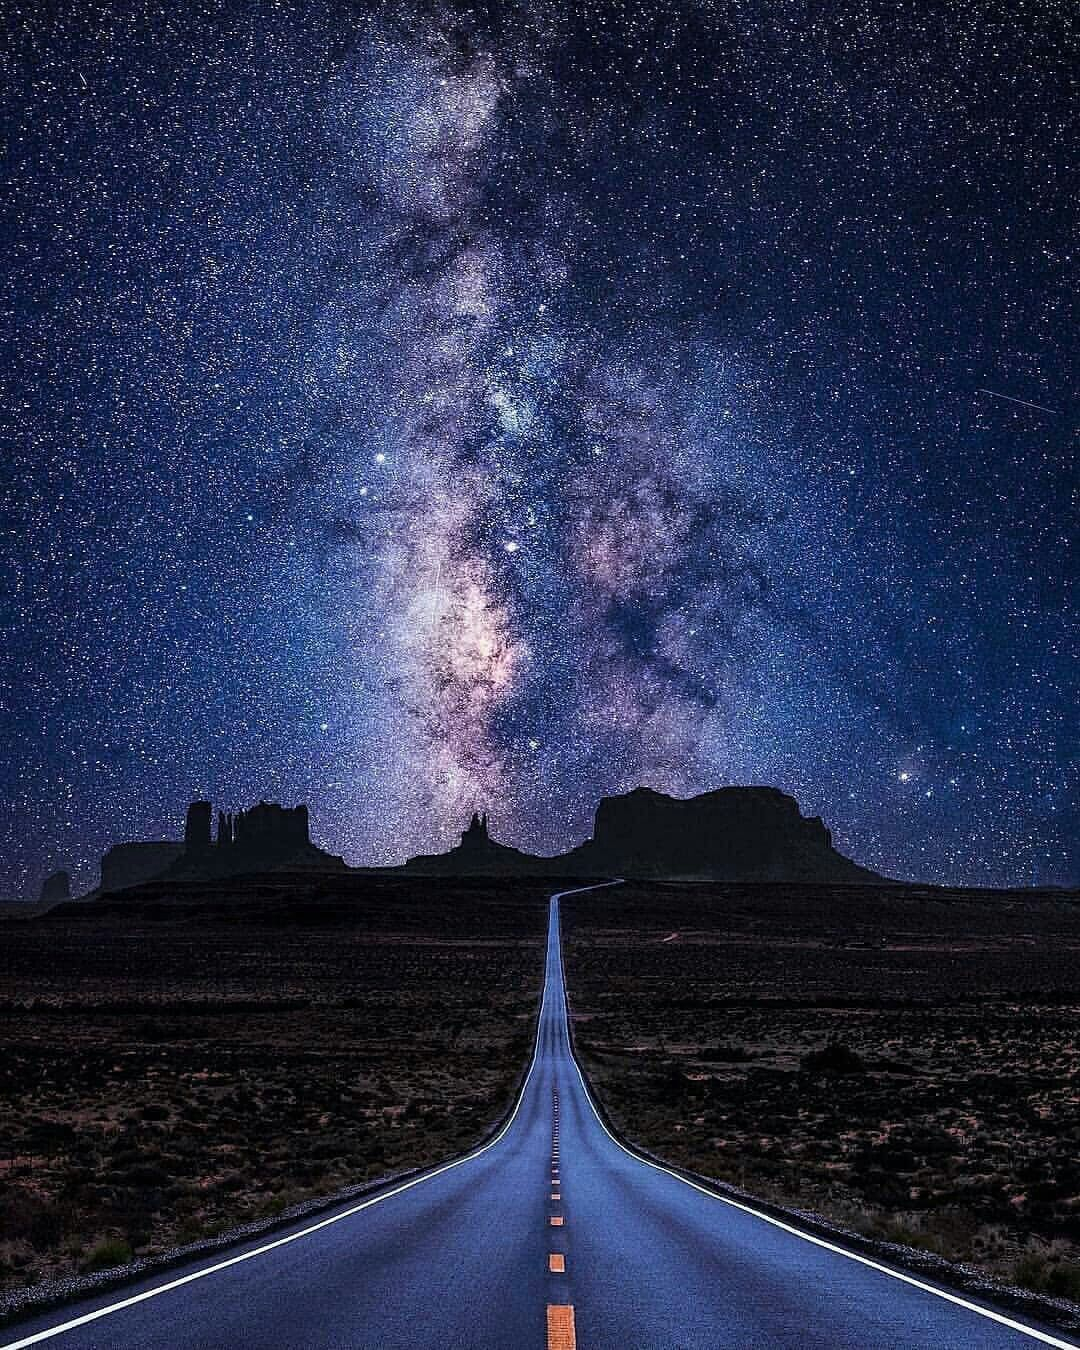 Into The Night Photography: View of the Milky Way with